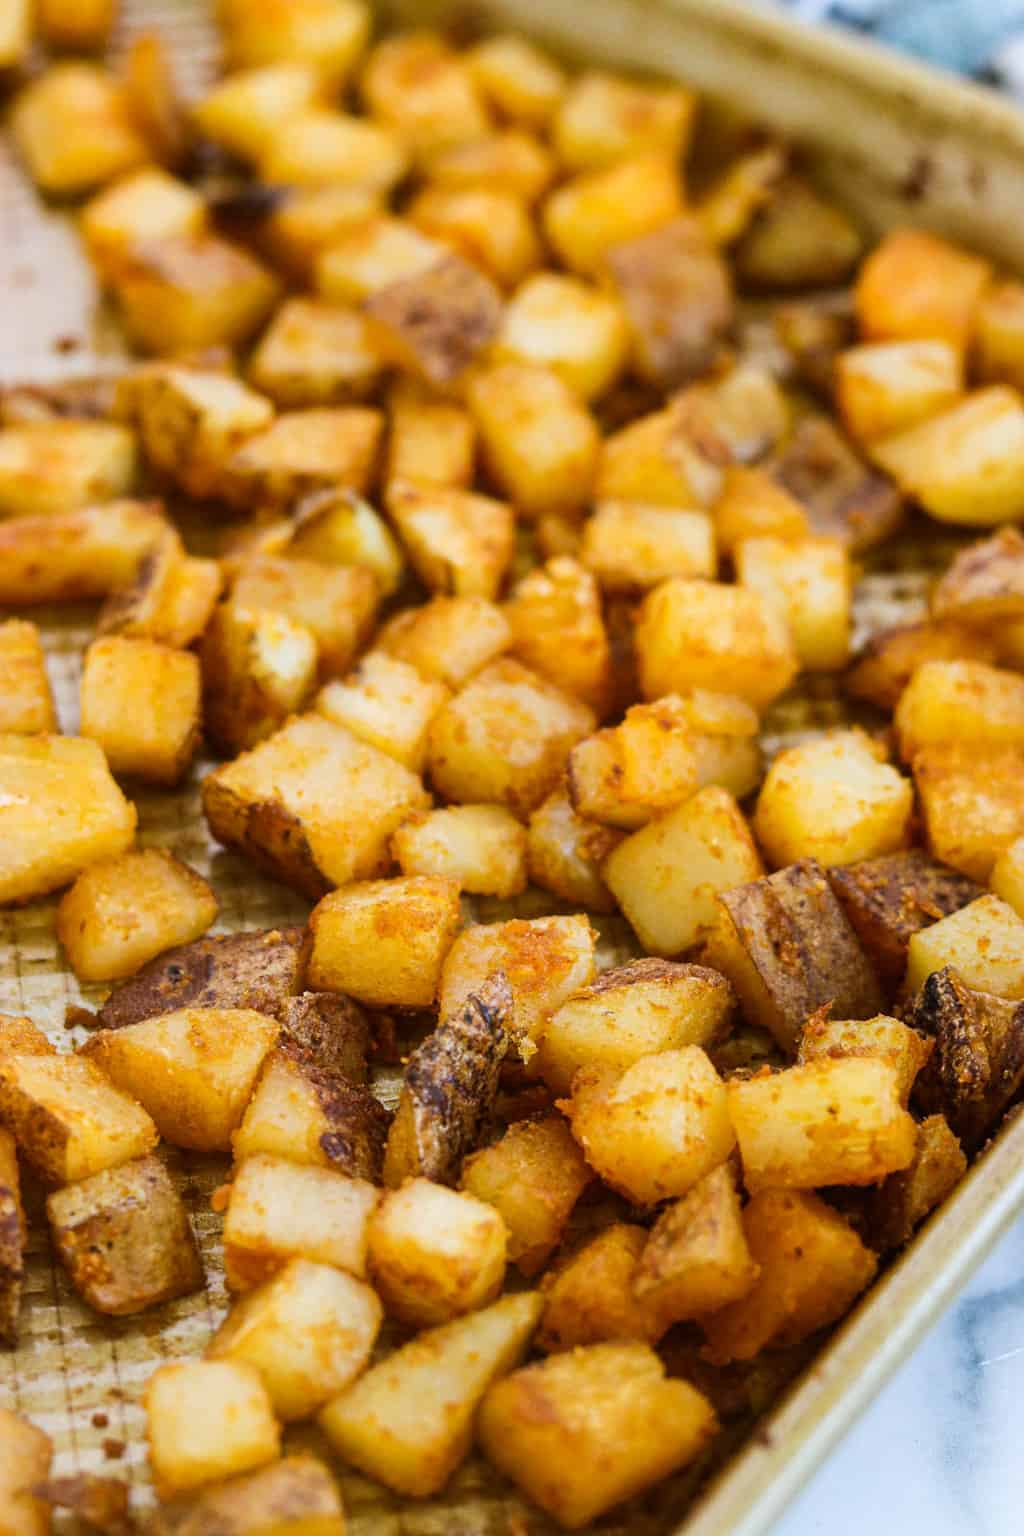 An up-close shot of a pan of roasted breakfast potatoes